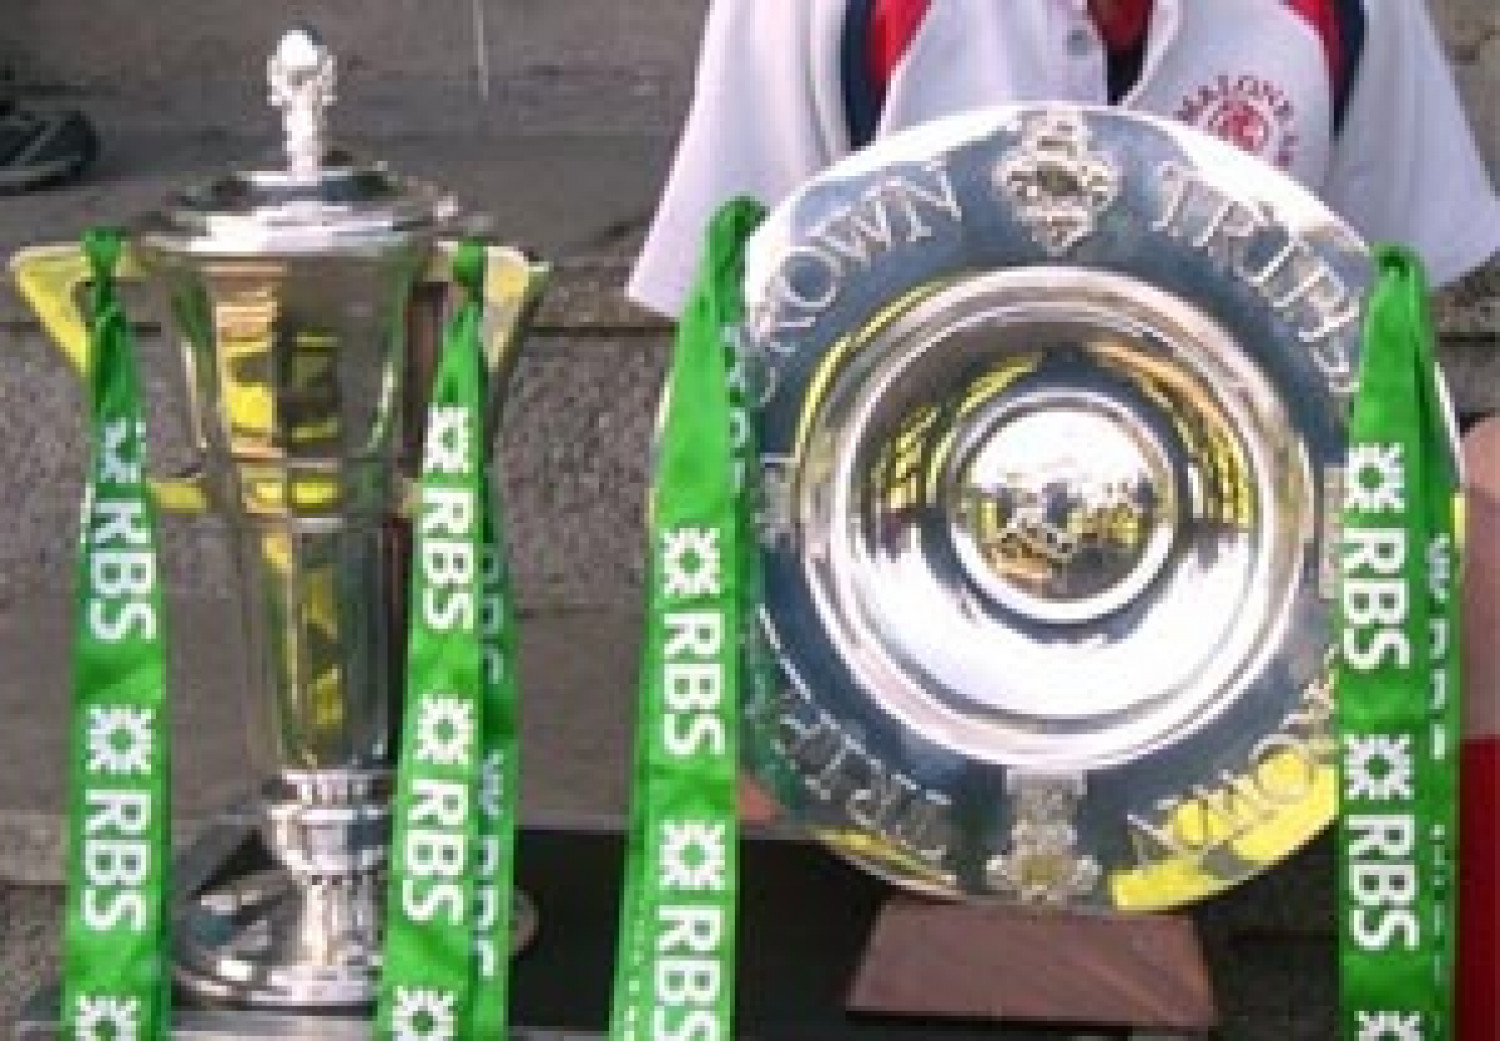 Infographic of Six Nations Championship Trophy Infographic